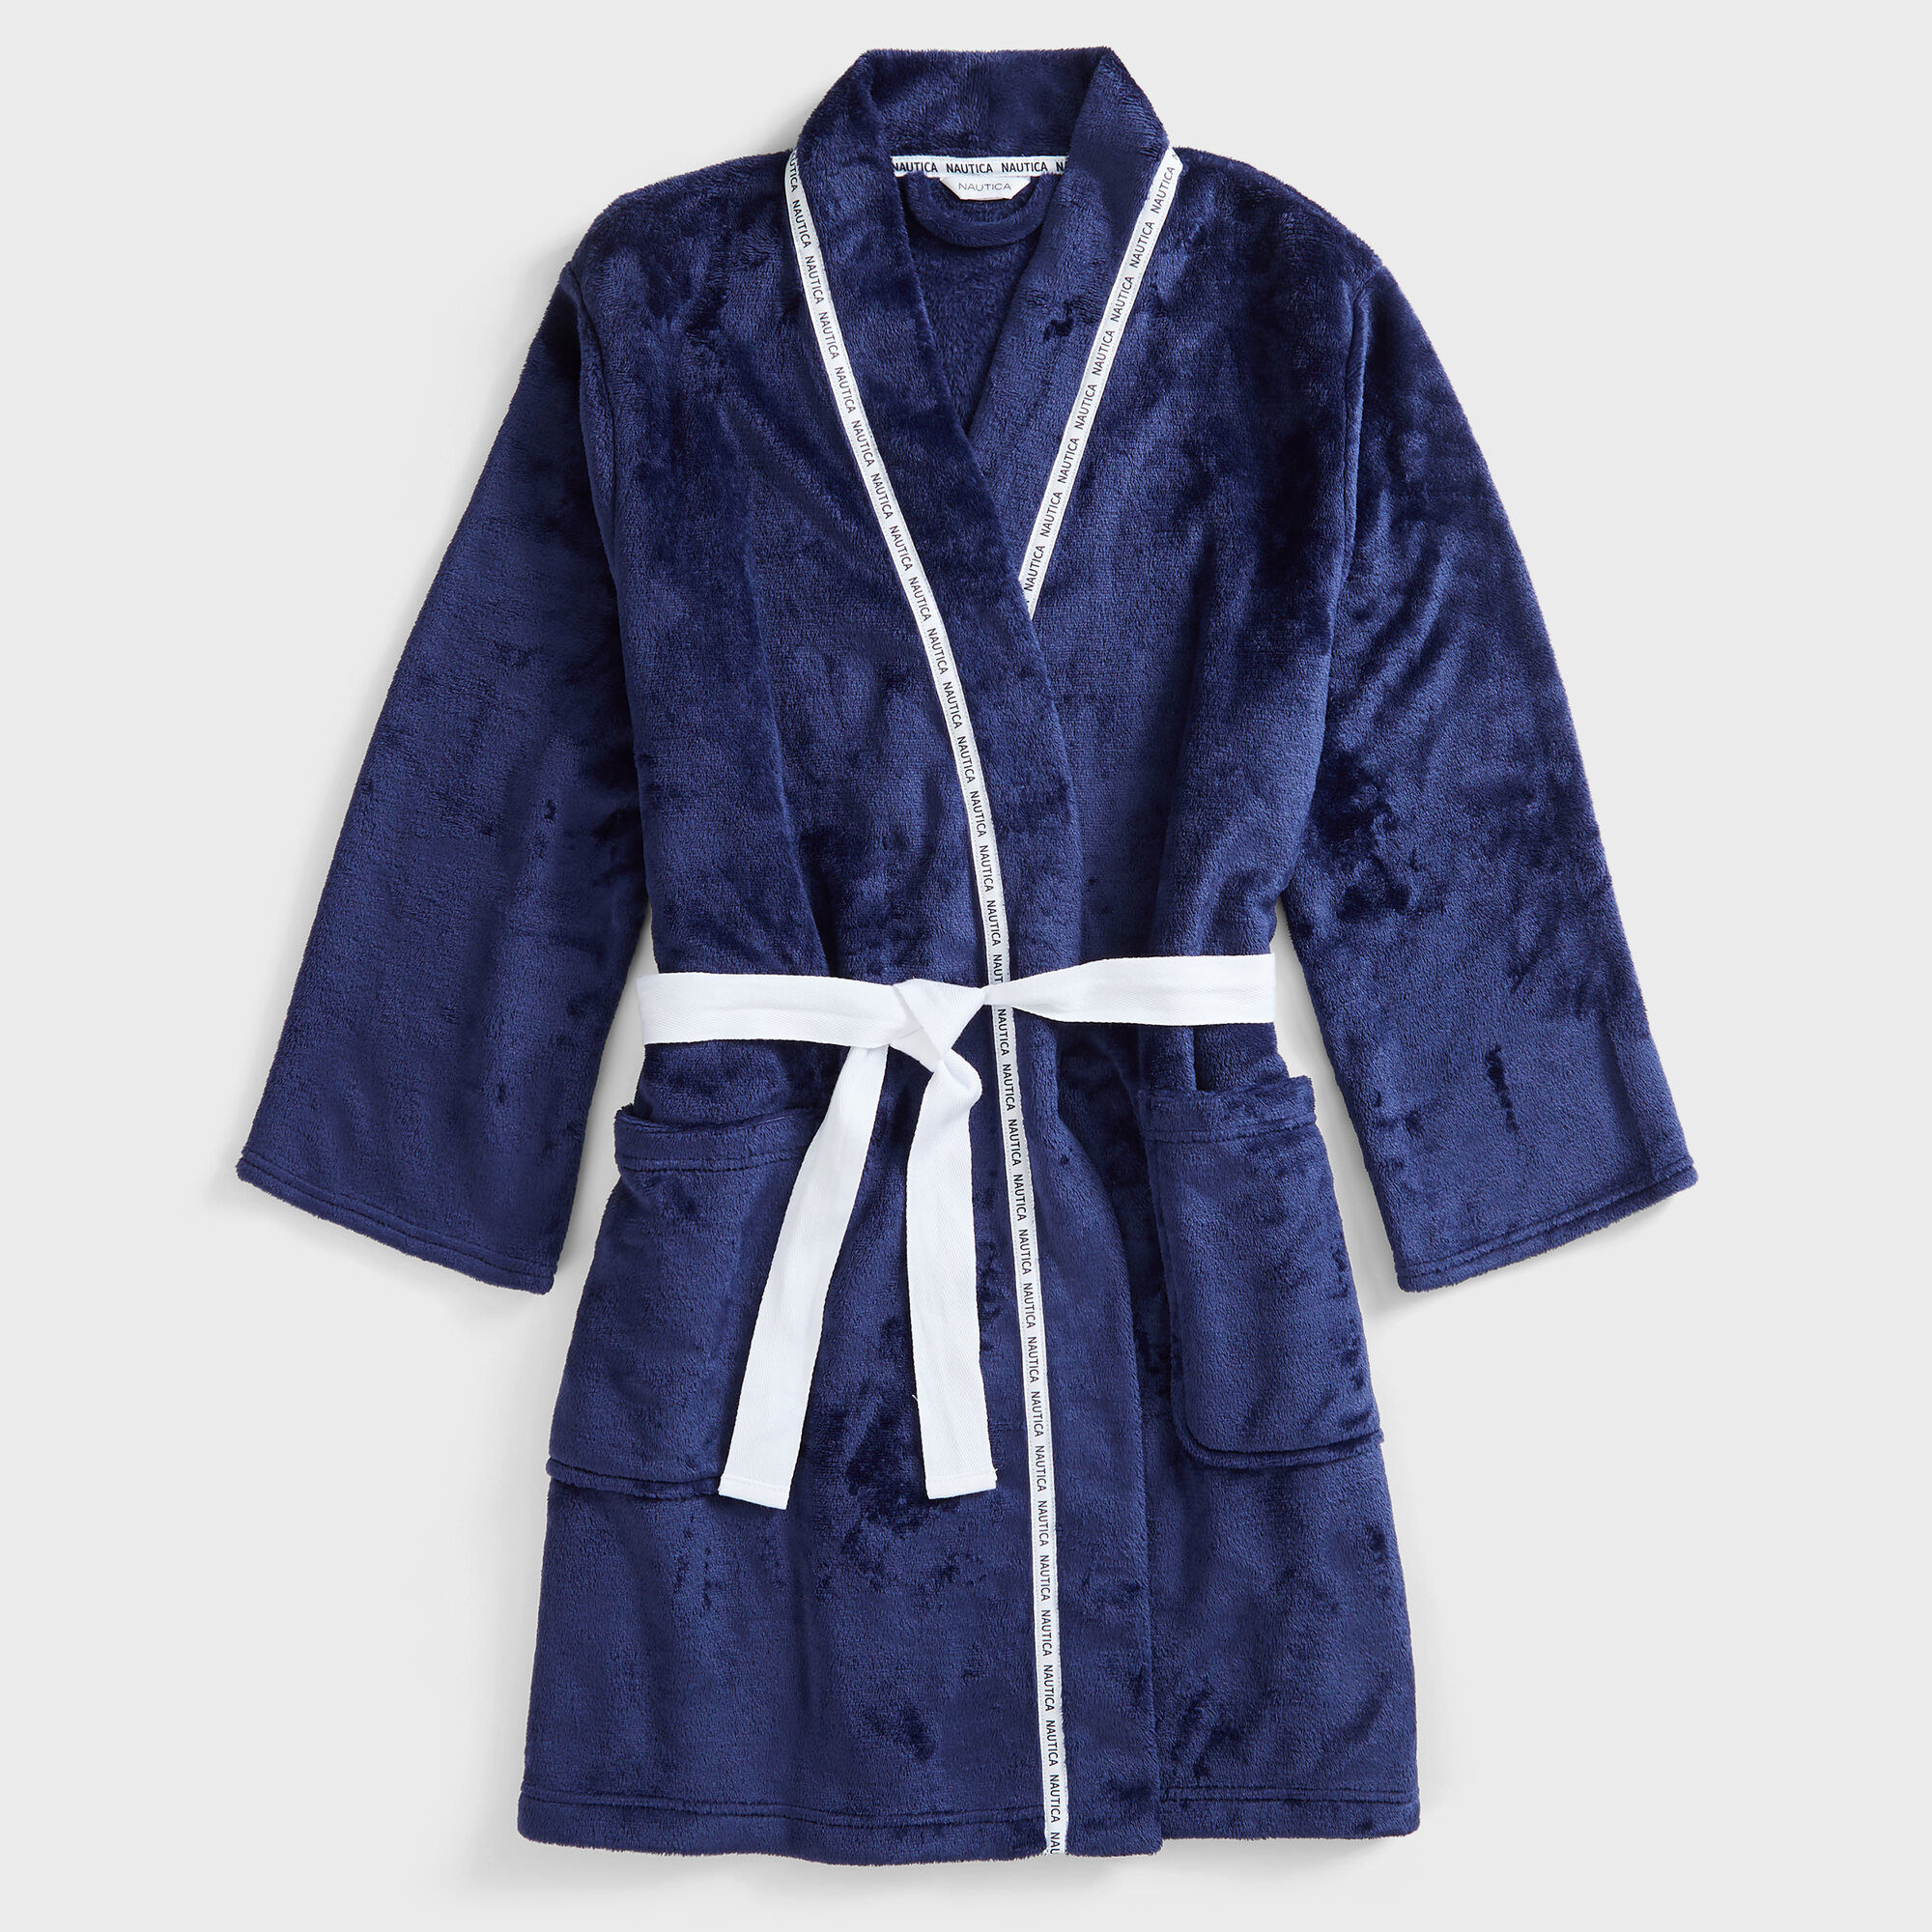 Blue robe with white details and big front pockets